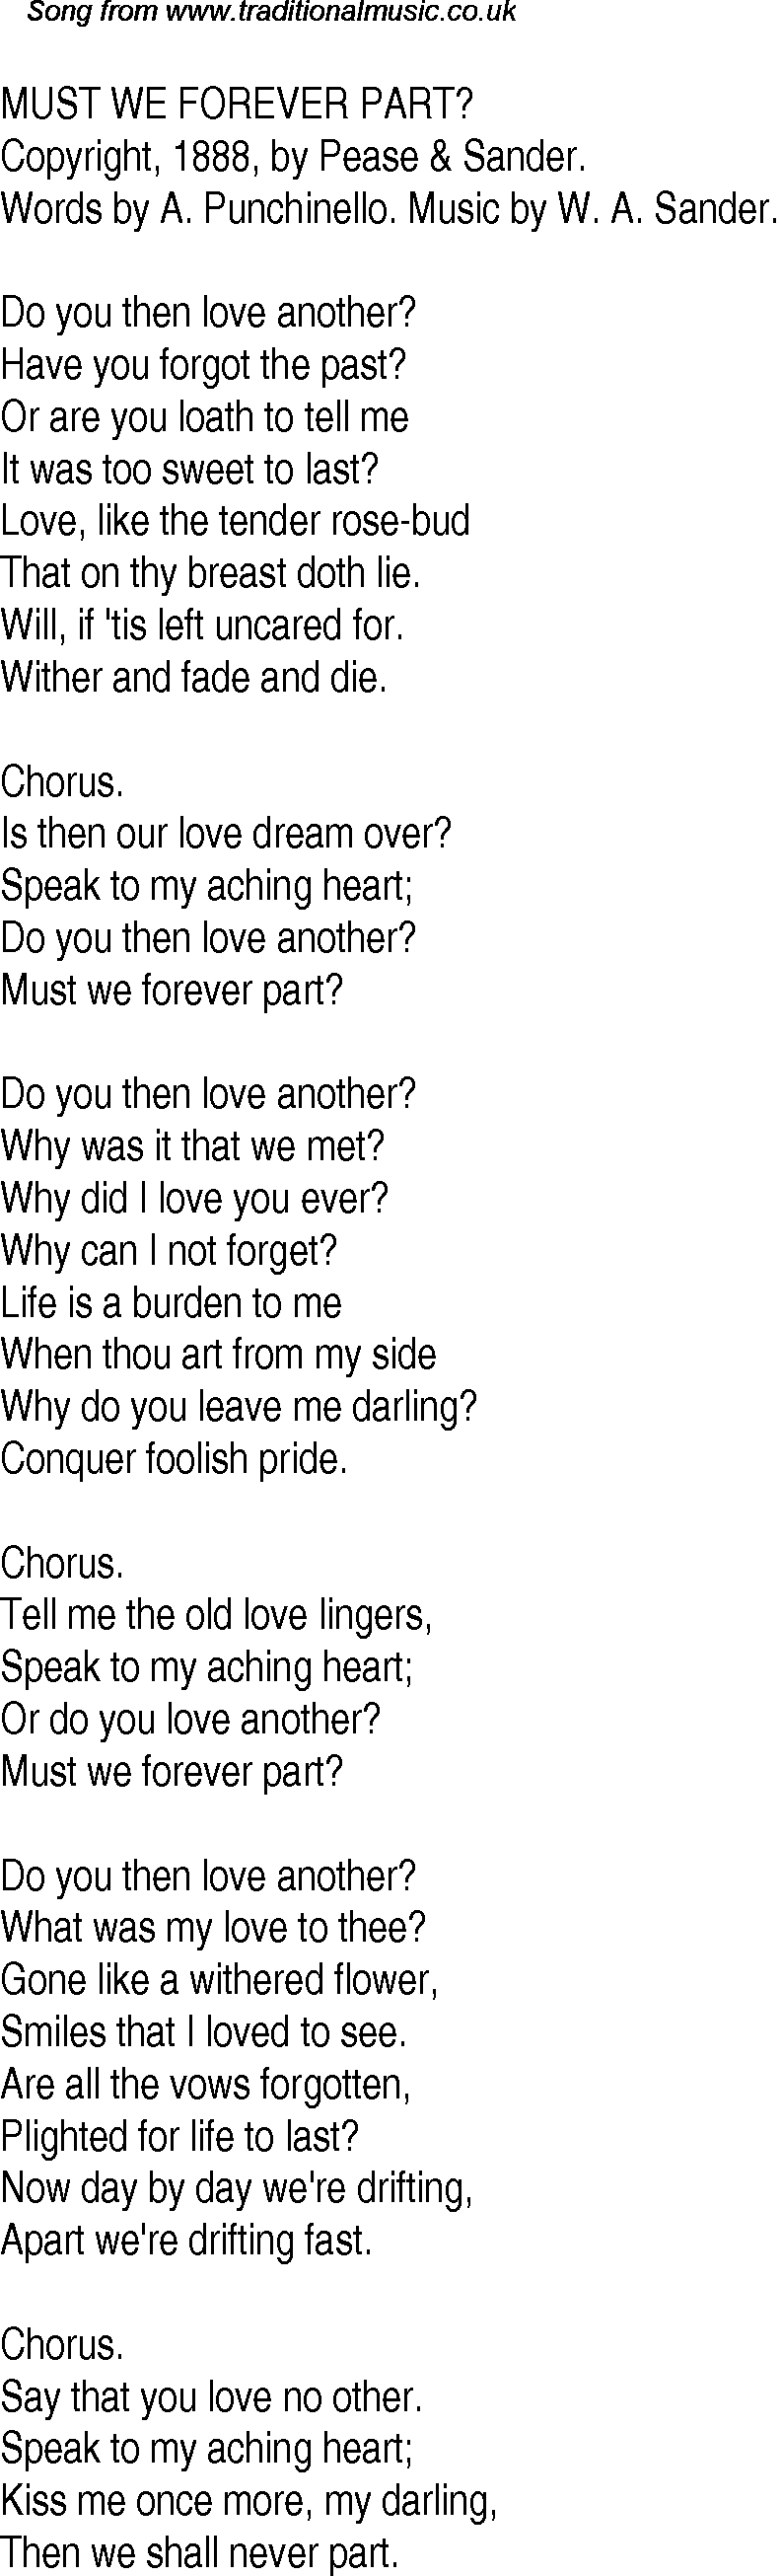 Old Time Song Lyrics for 22 Must We Forever Part